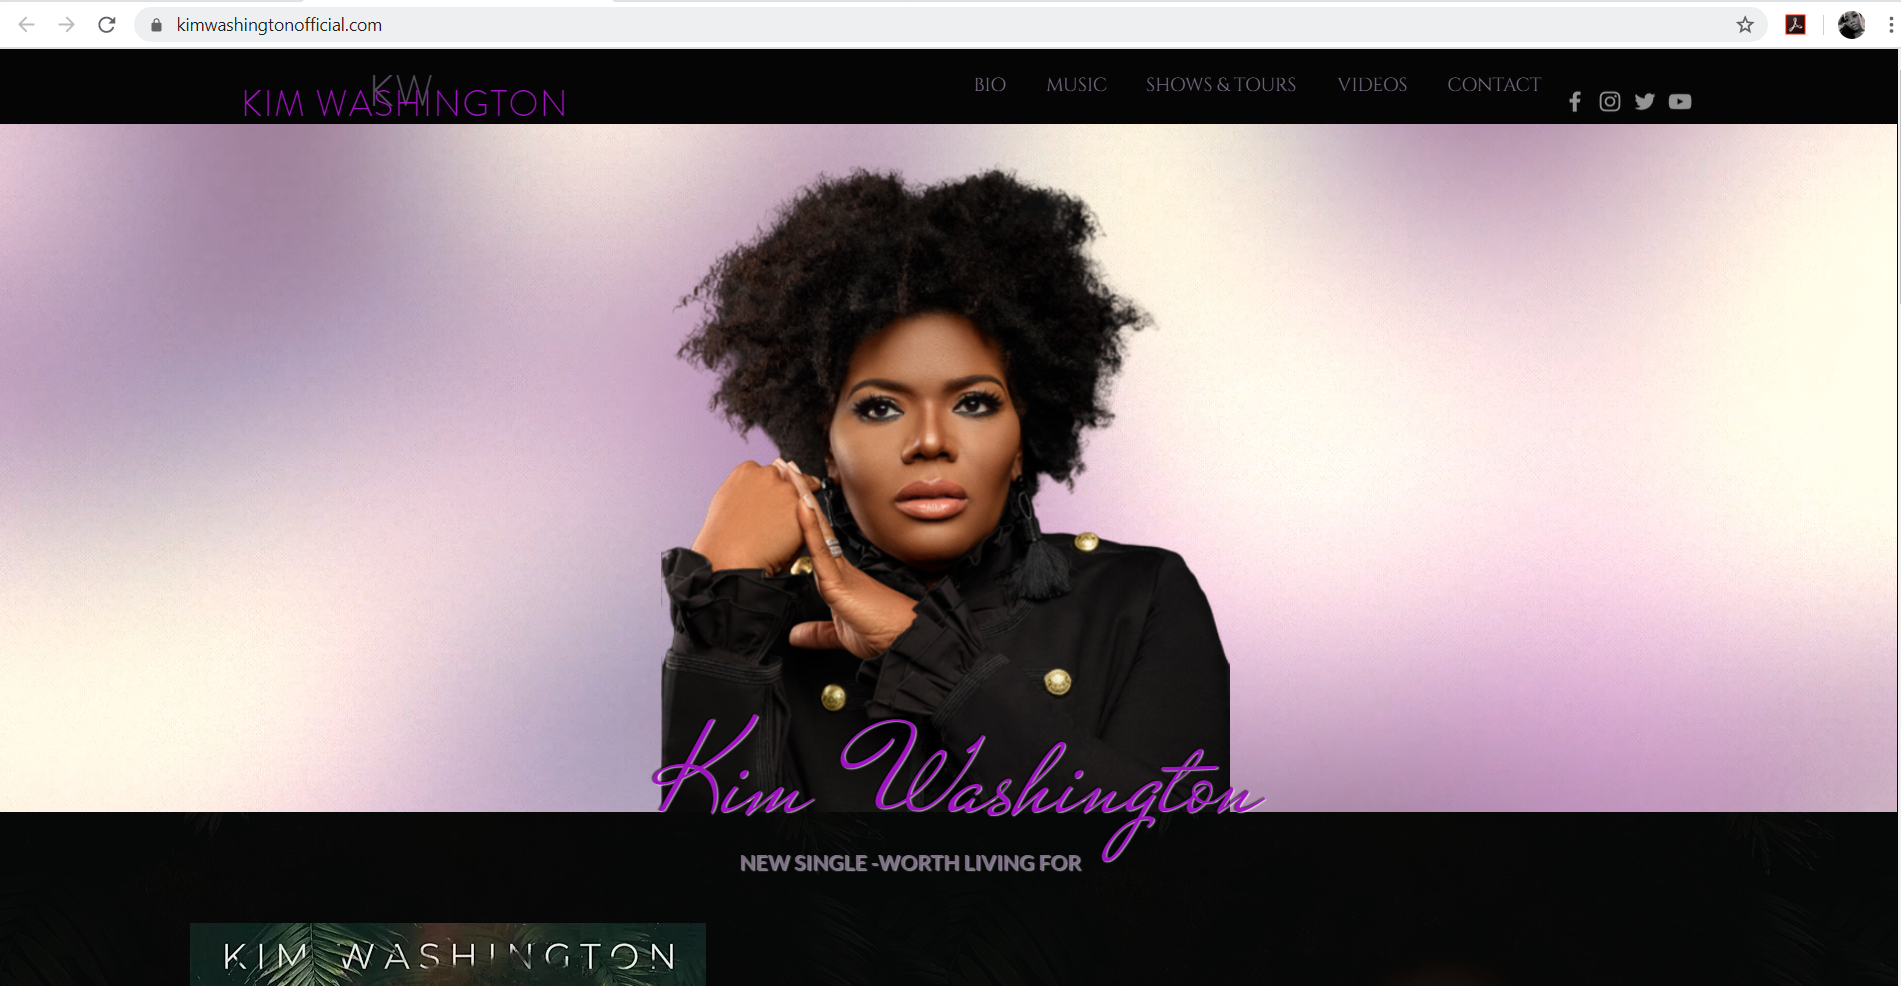 Kim Washington